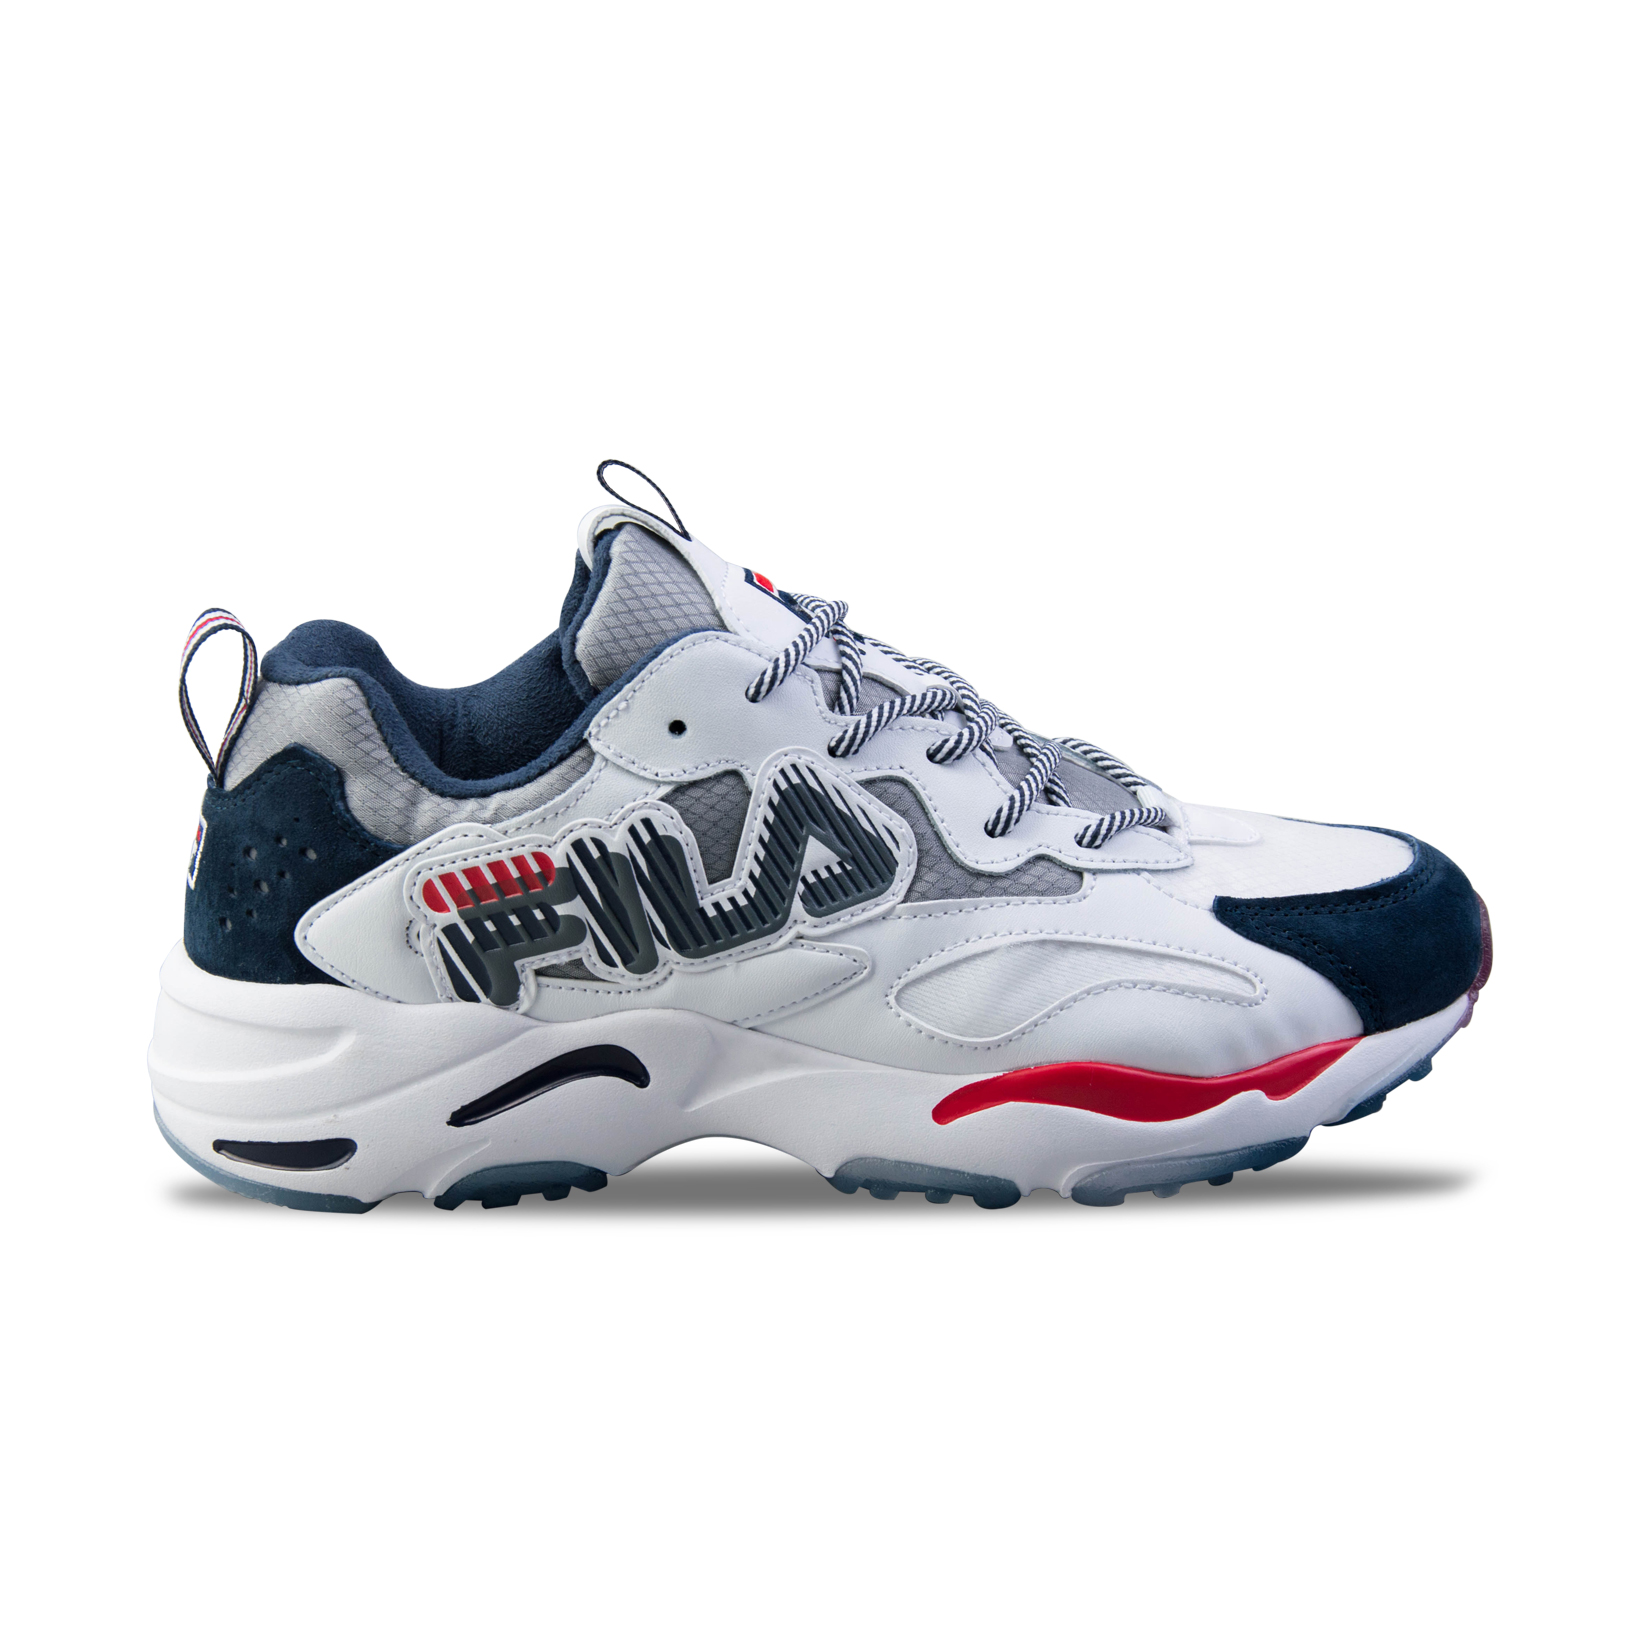 Fila Heritage Ray Tracer Graphic White - Blue